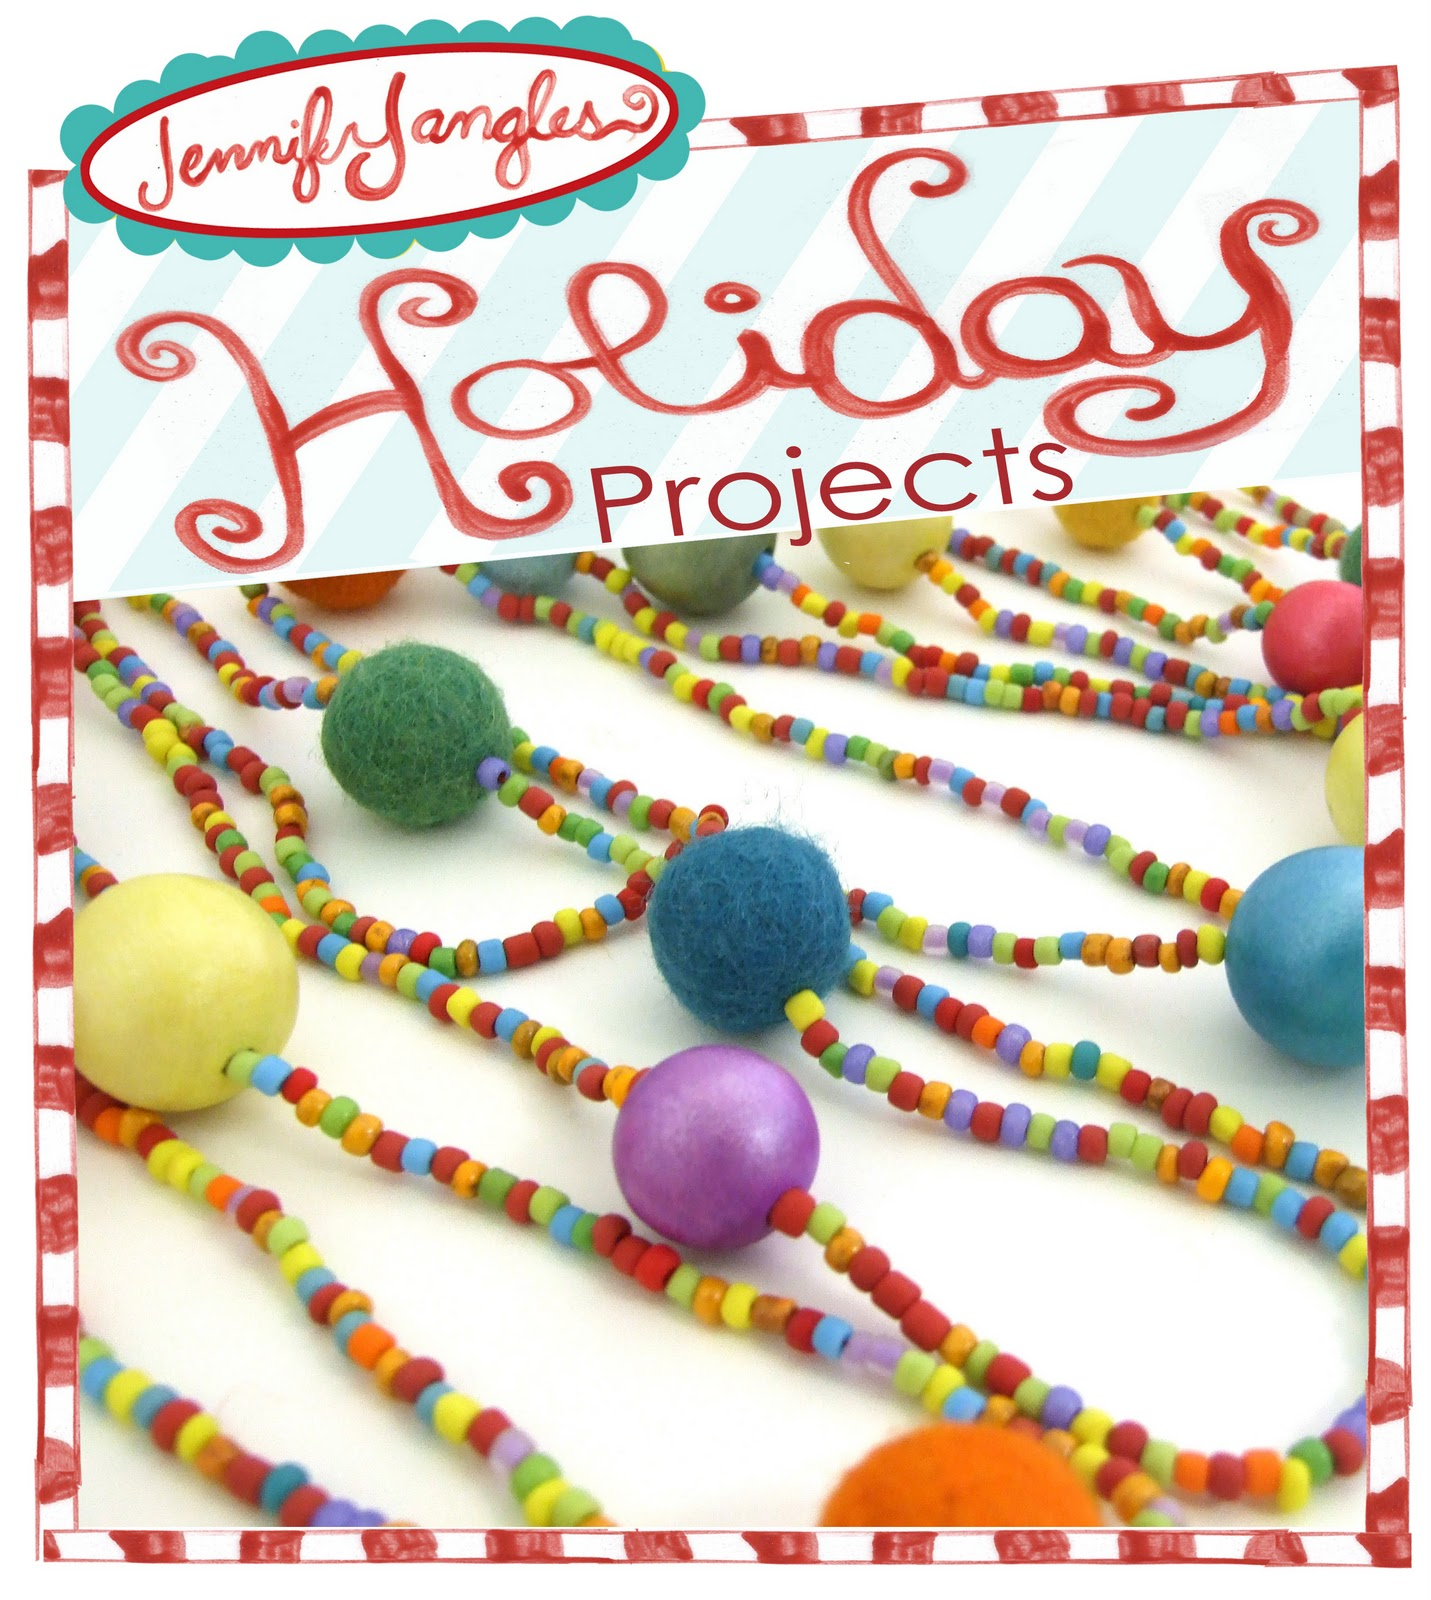 holiday project 6 bead garland jennifer jangles